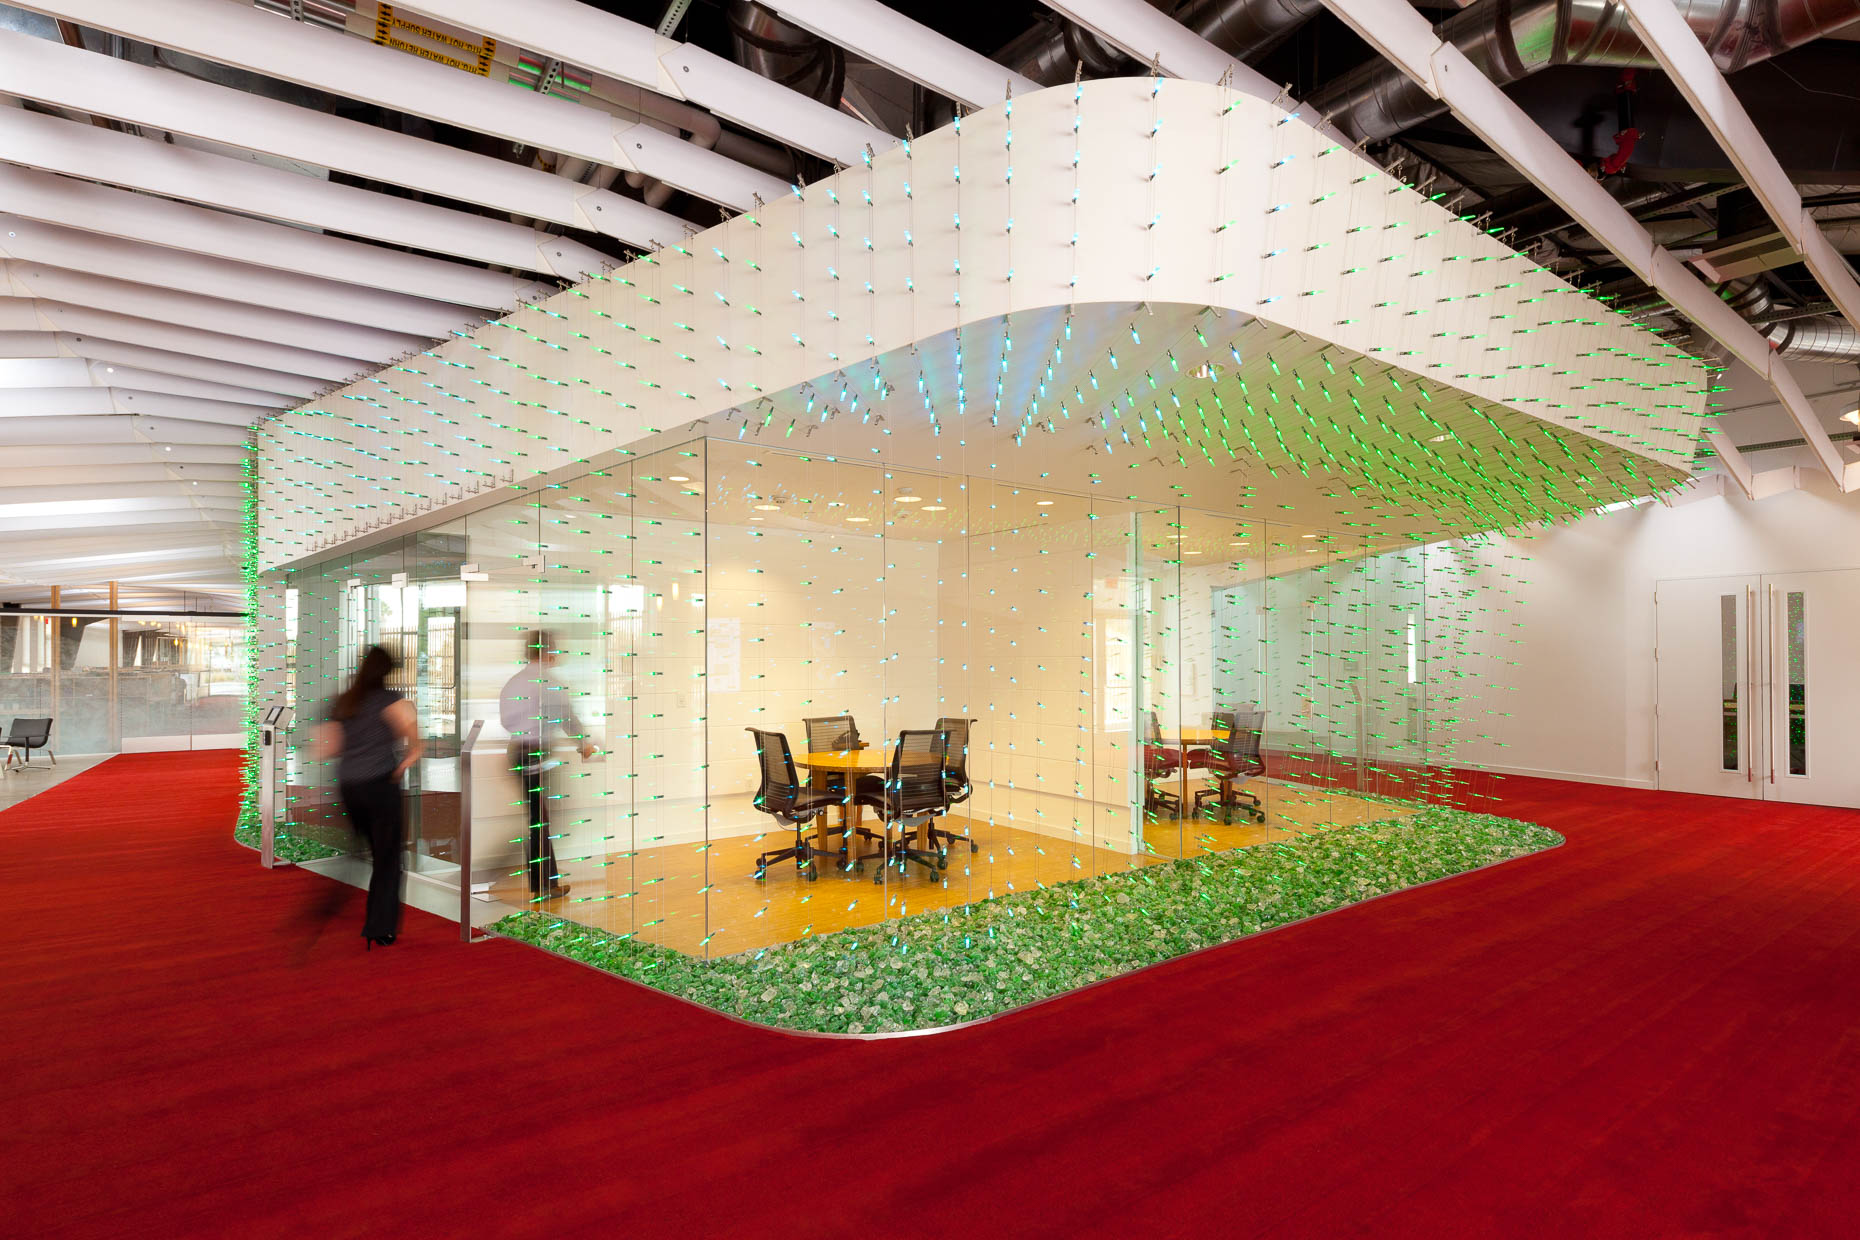 Modern architecture glass walled meeting room with green lights at Claremont University Consortium, Claremont College, California. David Zaitz Photography.